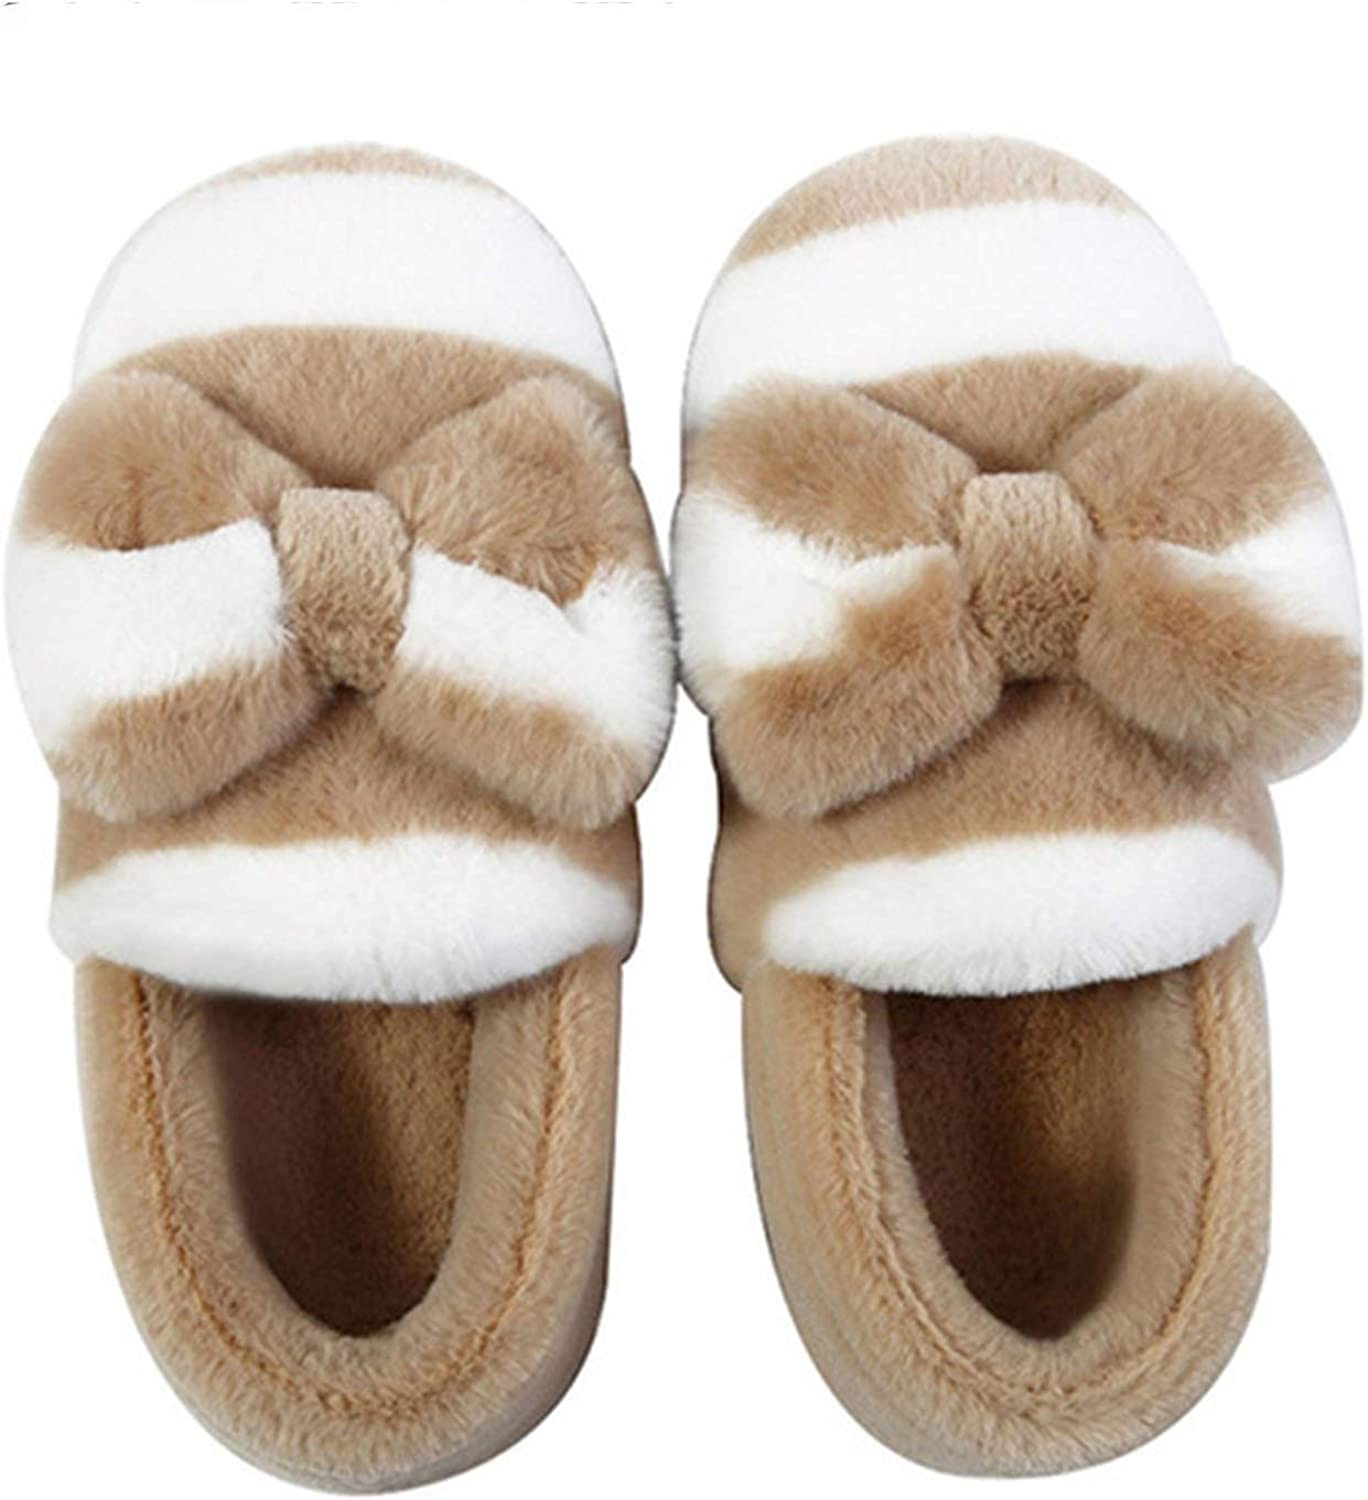 Can't be satisfied Fluffy Slippers Women Butterfly-Knot Striped Slippers with Fur Soft Winter Warm House Slippers,Plush Khaki,5.5